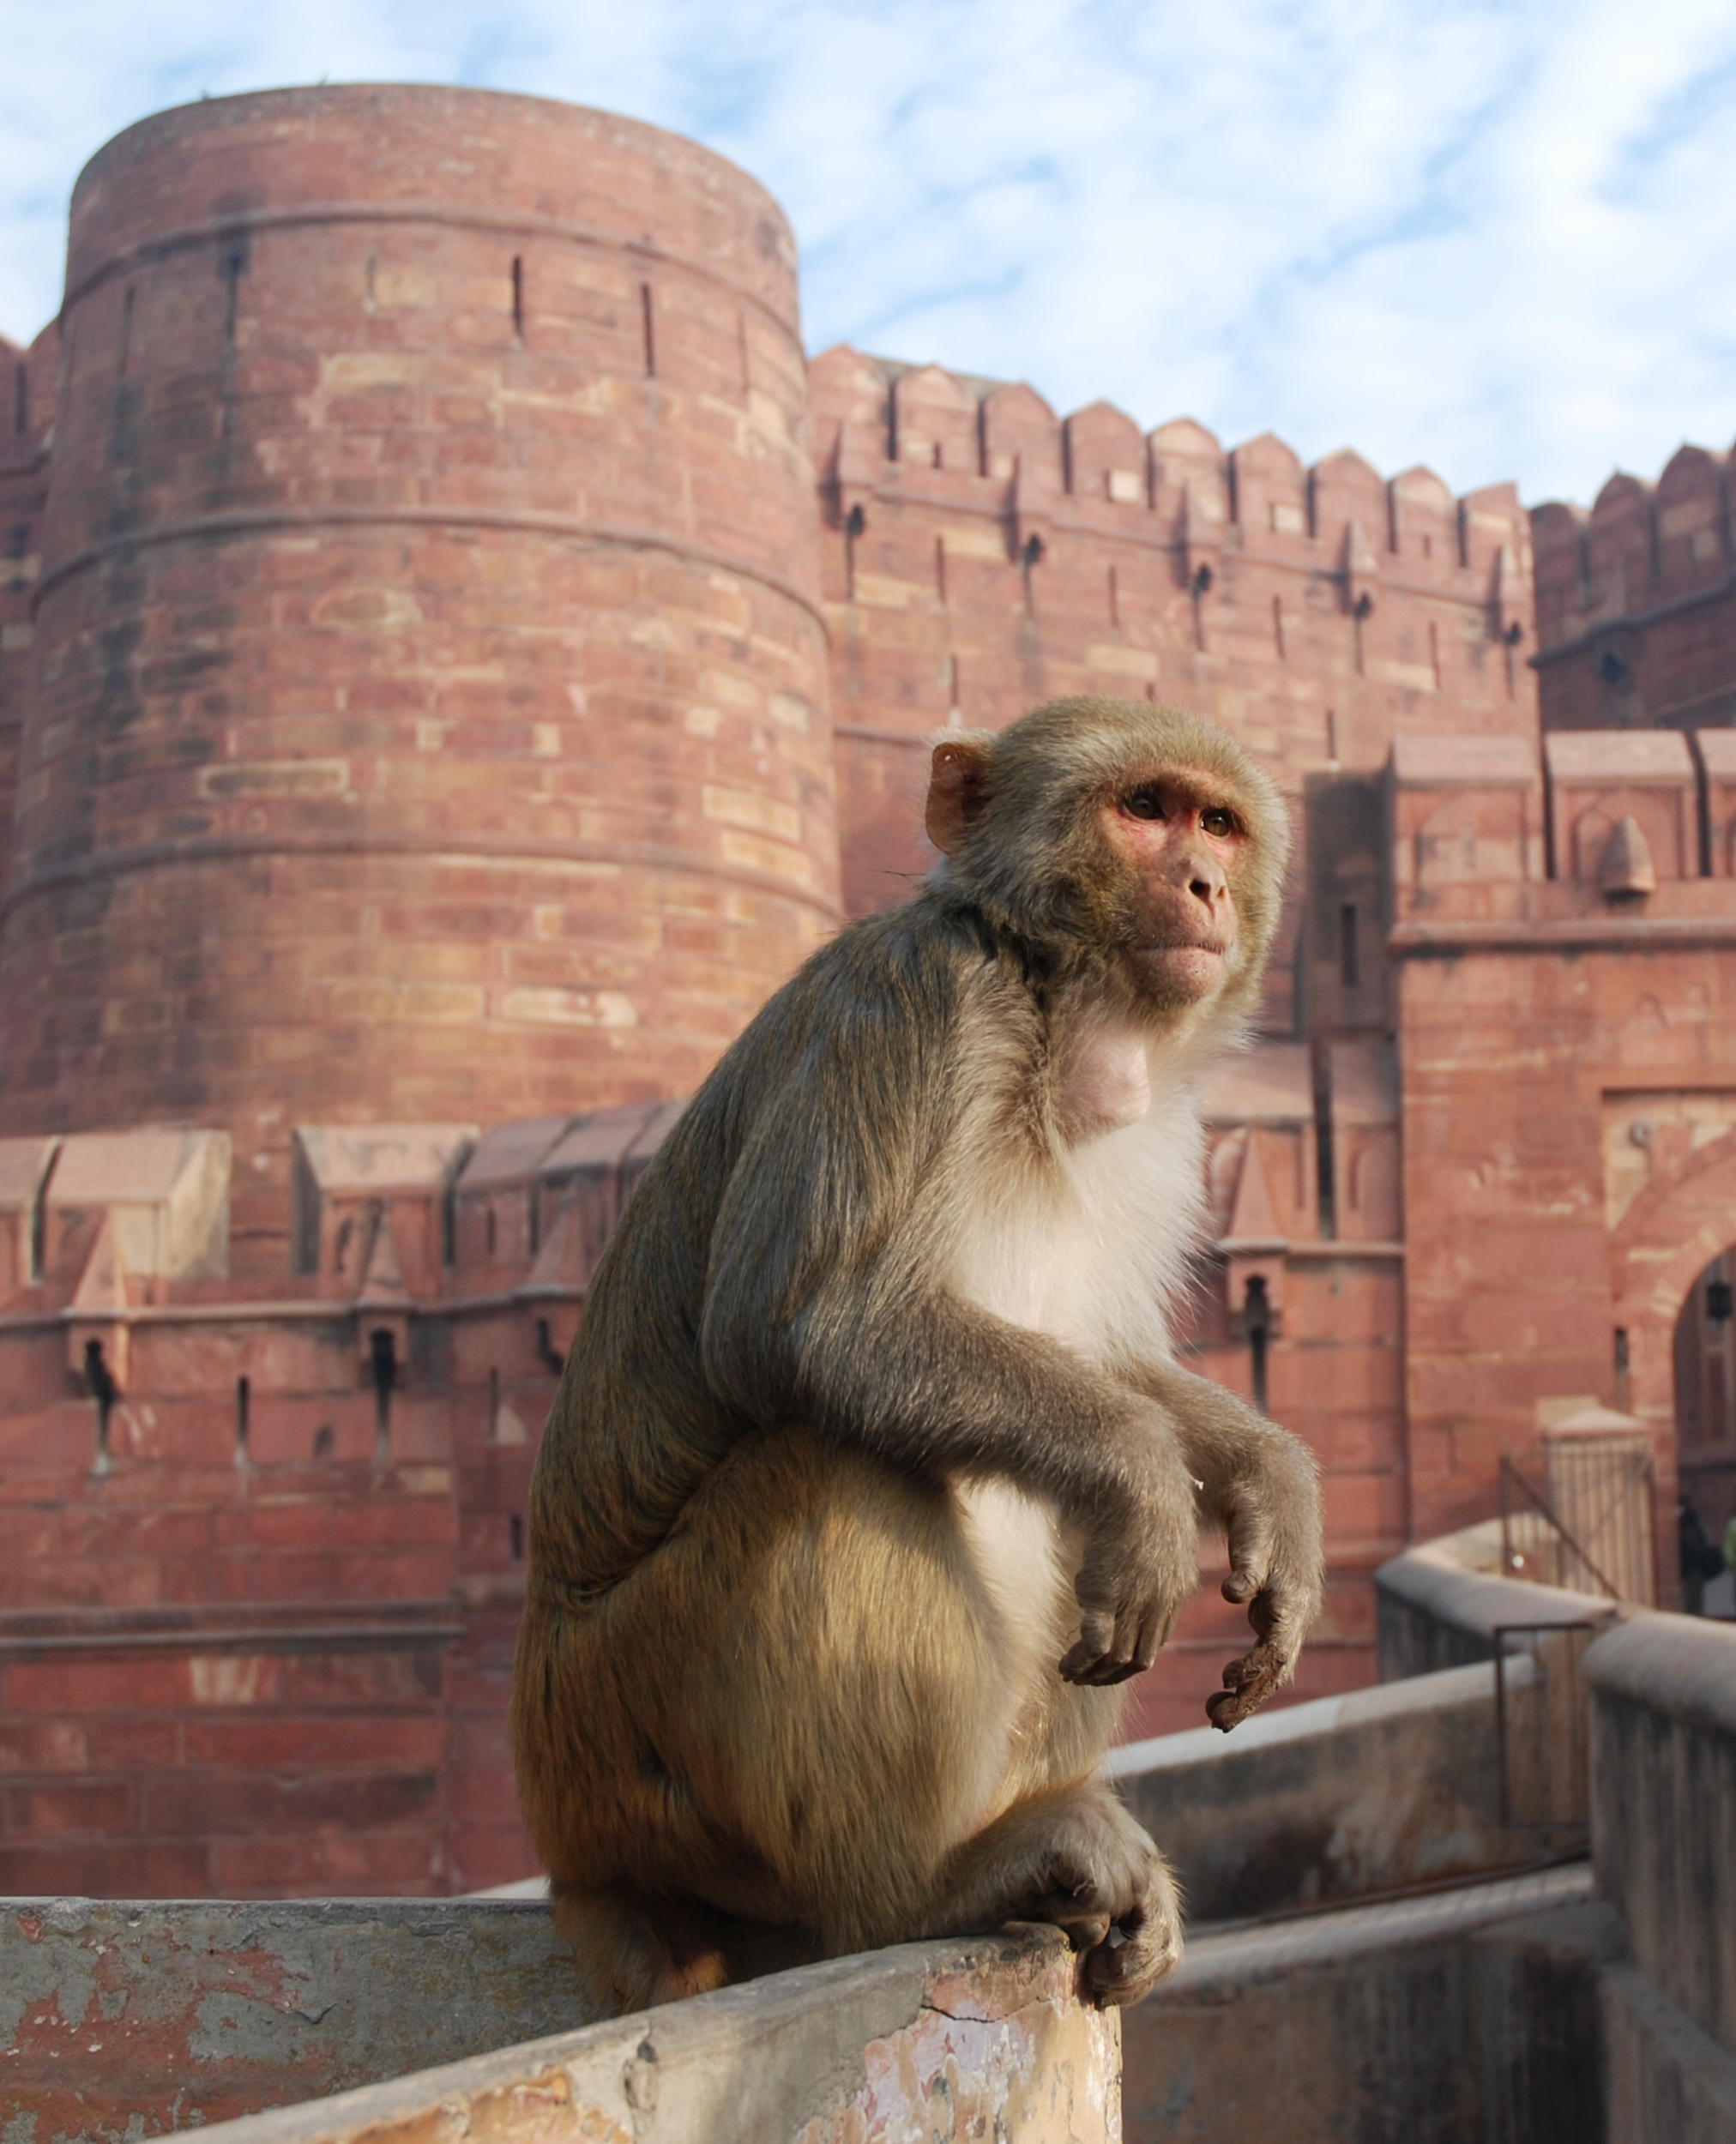 Rhesus macaque at Agra Fort, India